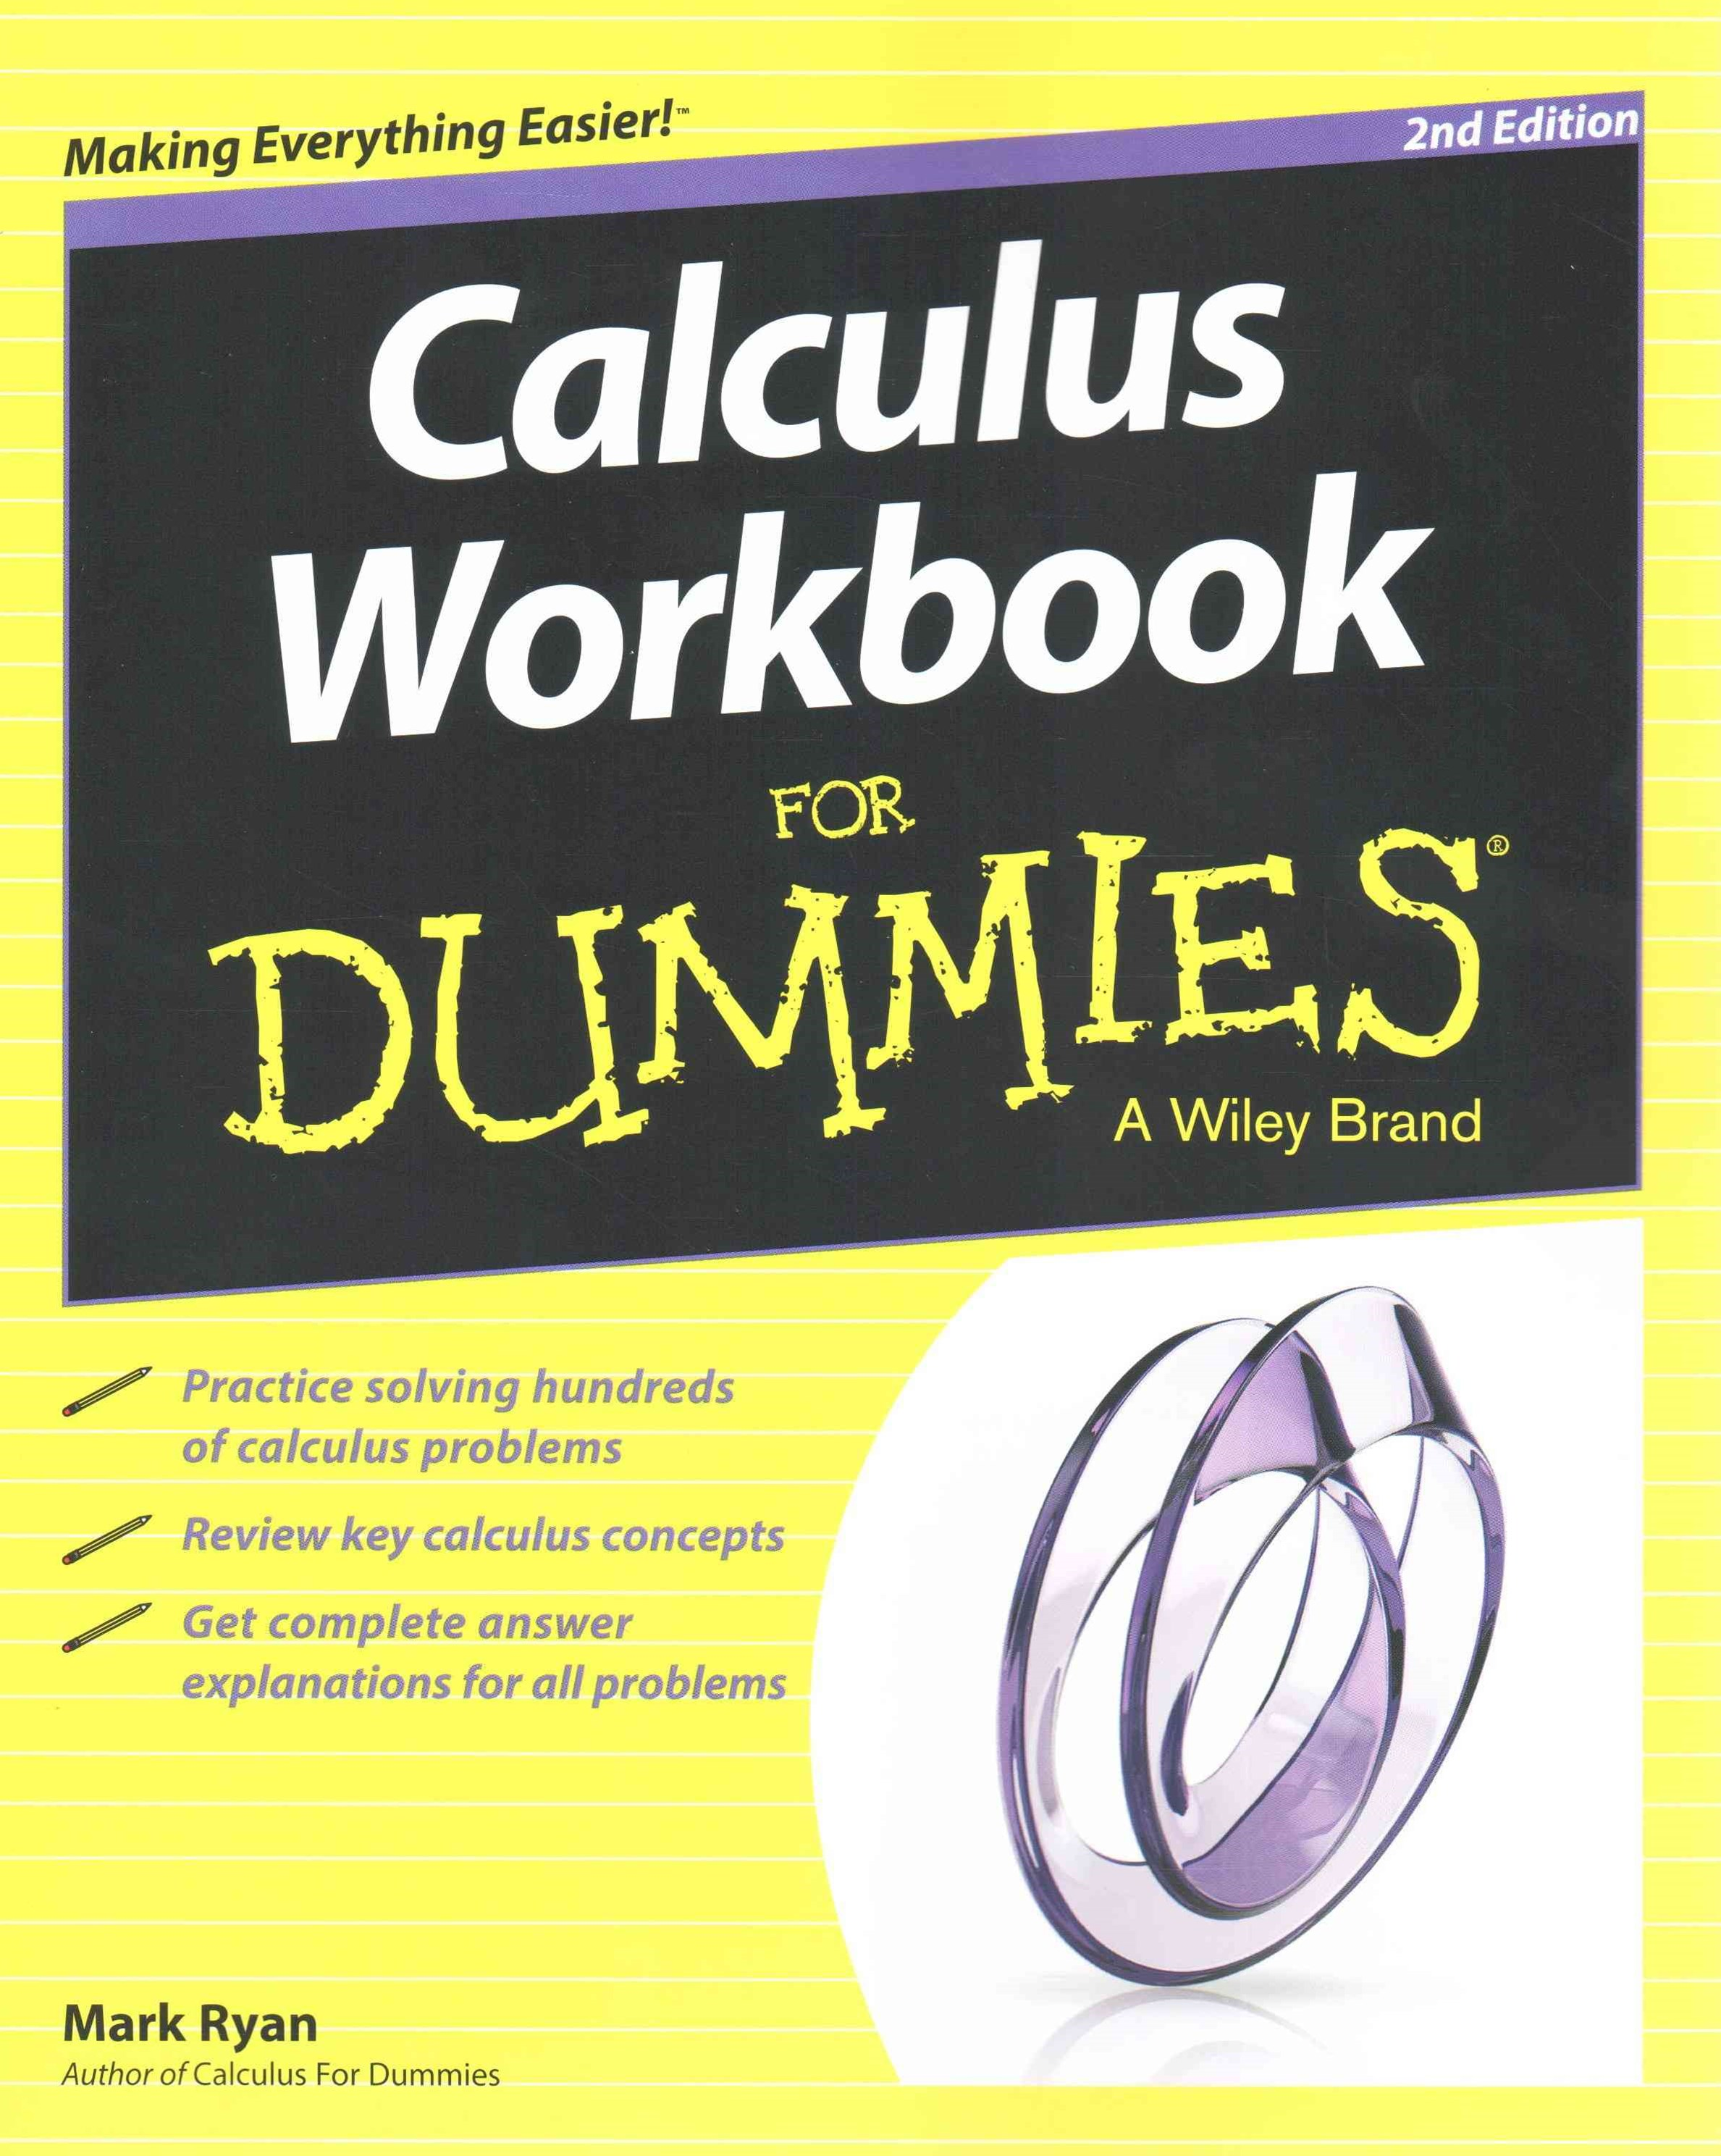 Calculus Workbook for Dummies Second Edition